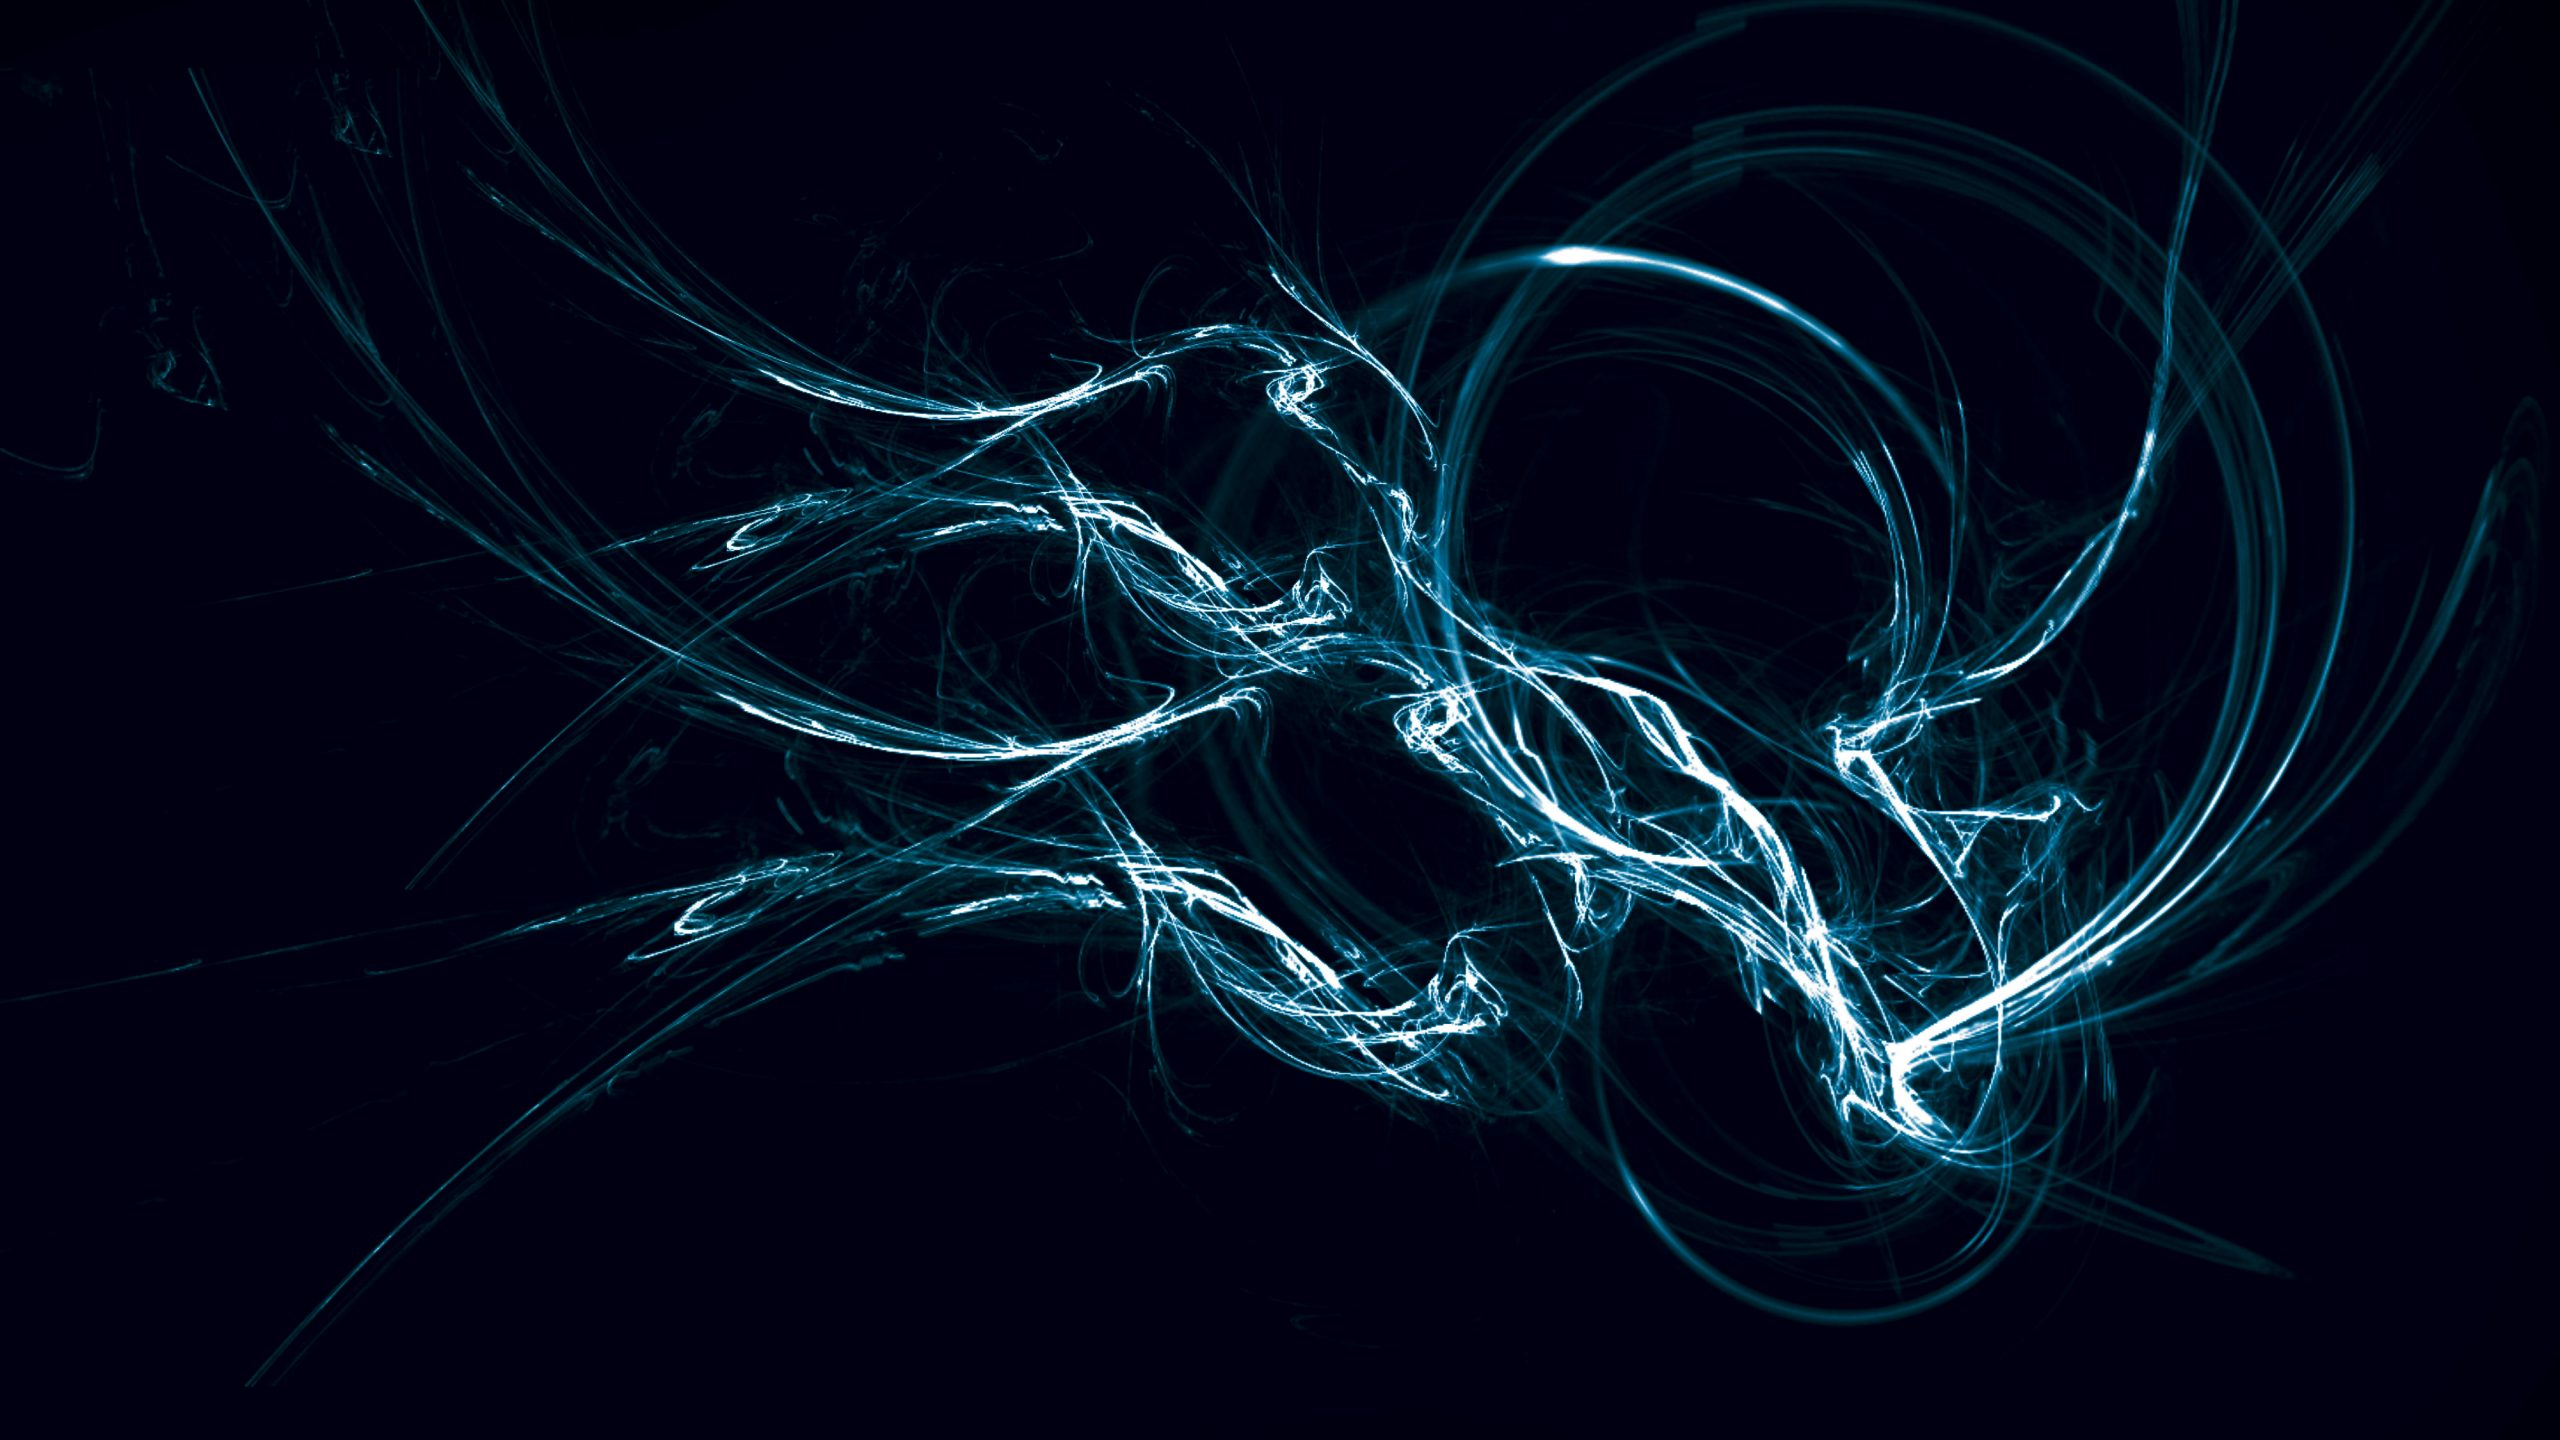 Blue-texture-smoke-abstract-background